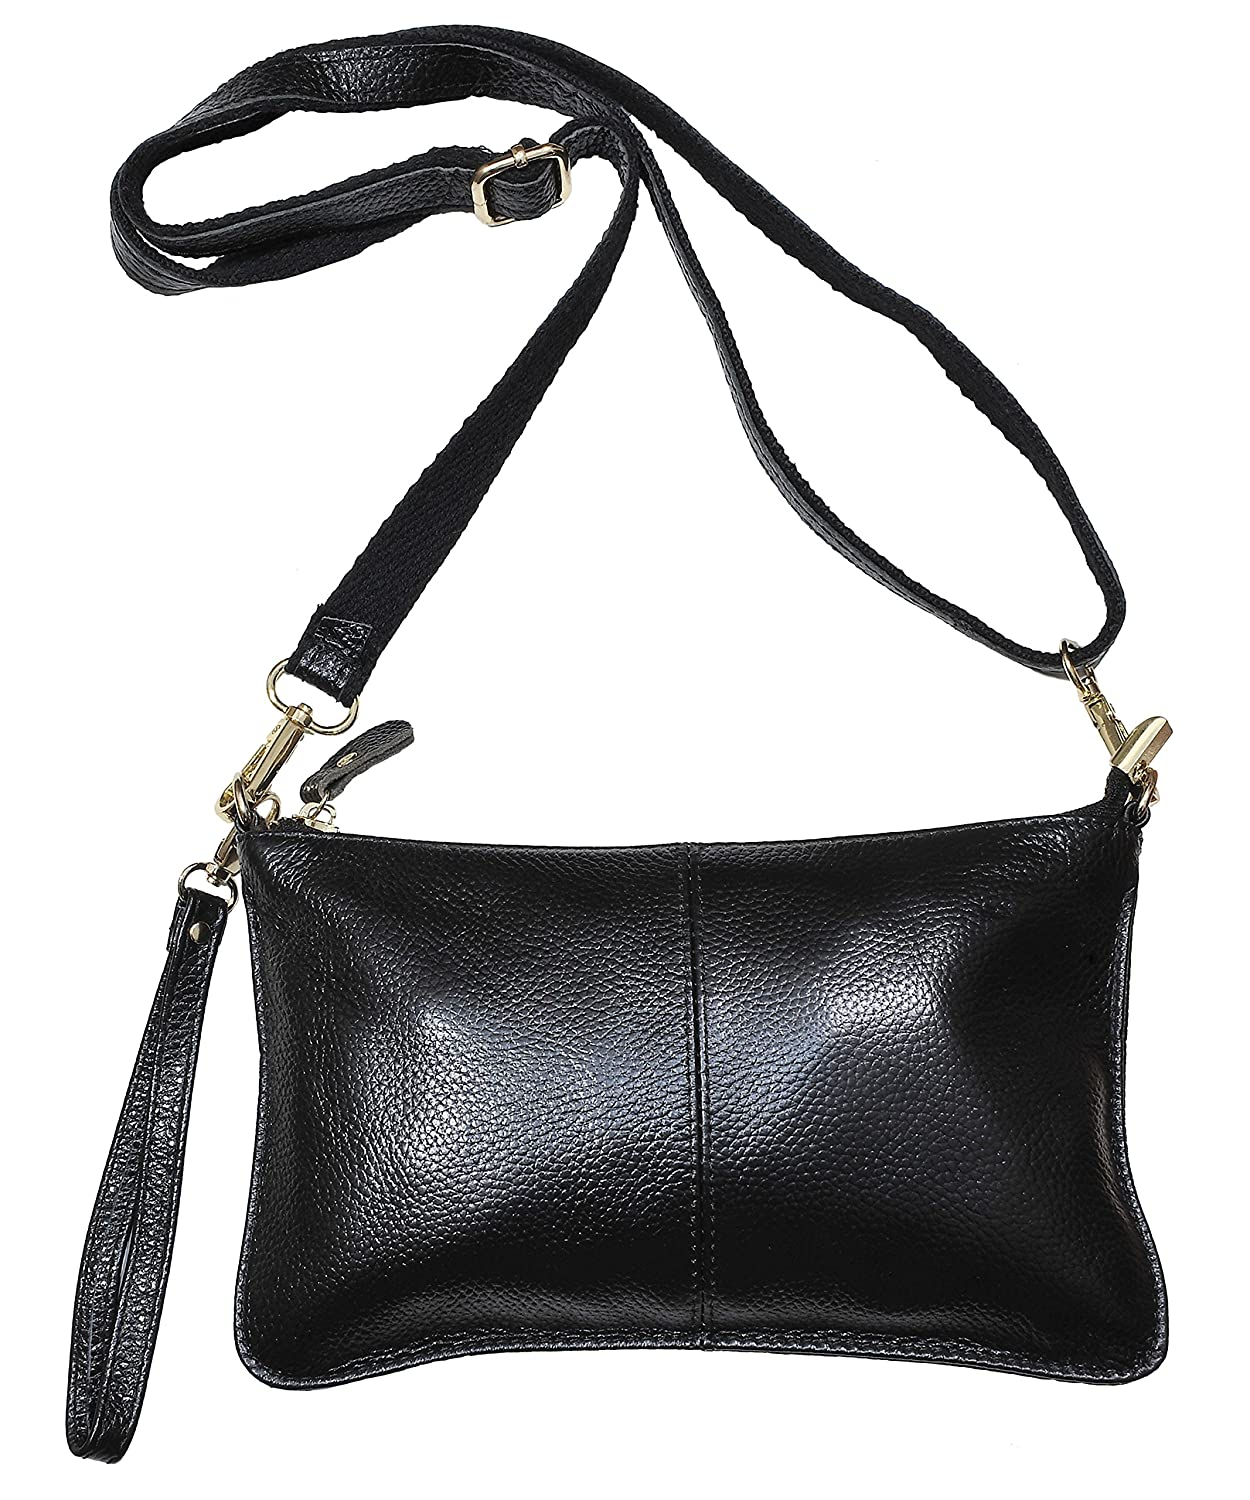 27a6cb234b38 ... You can use this as a sling shoulder purse   small crossbody bag    clutch wristlet evening bag